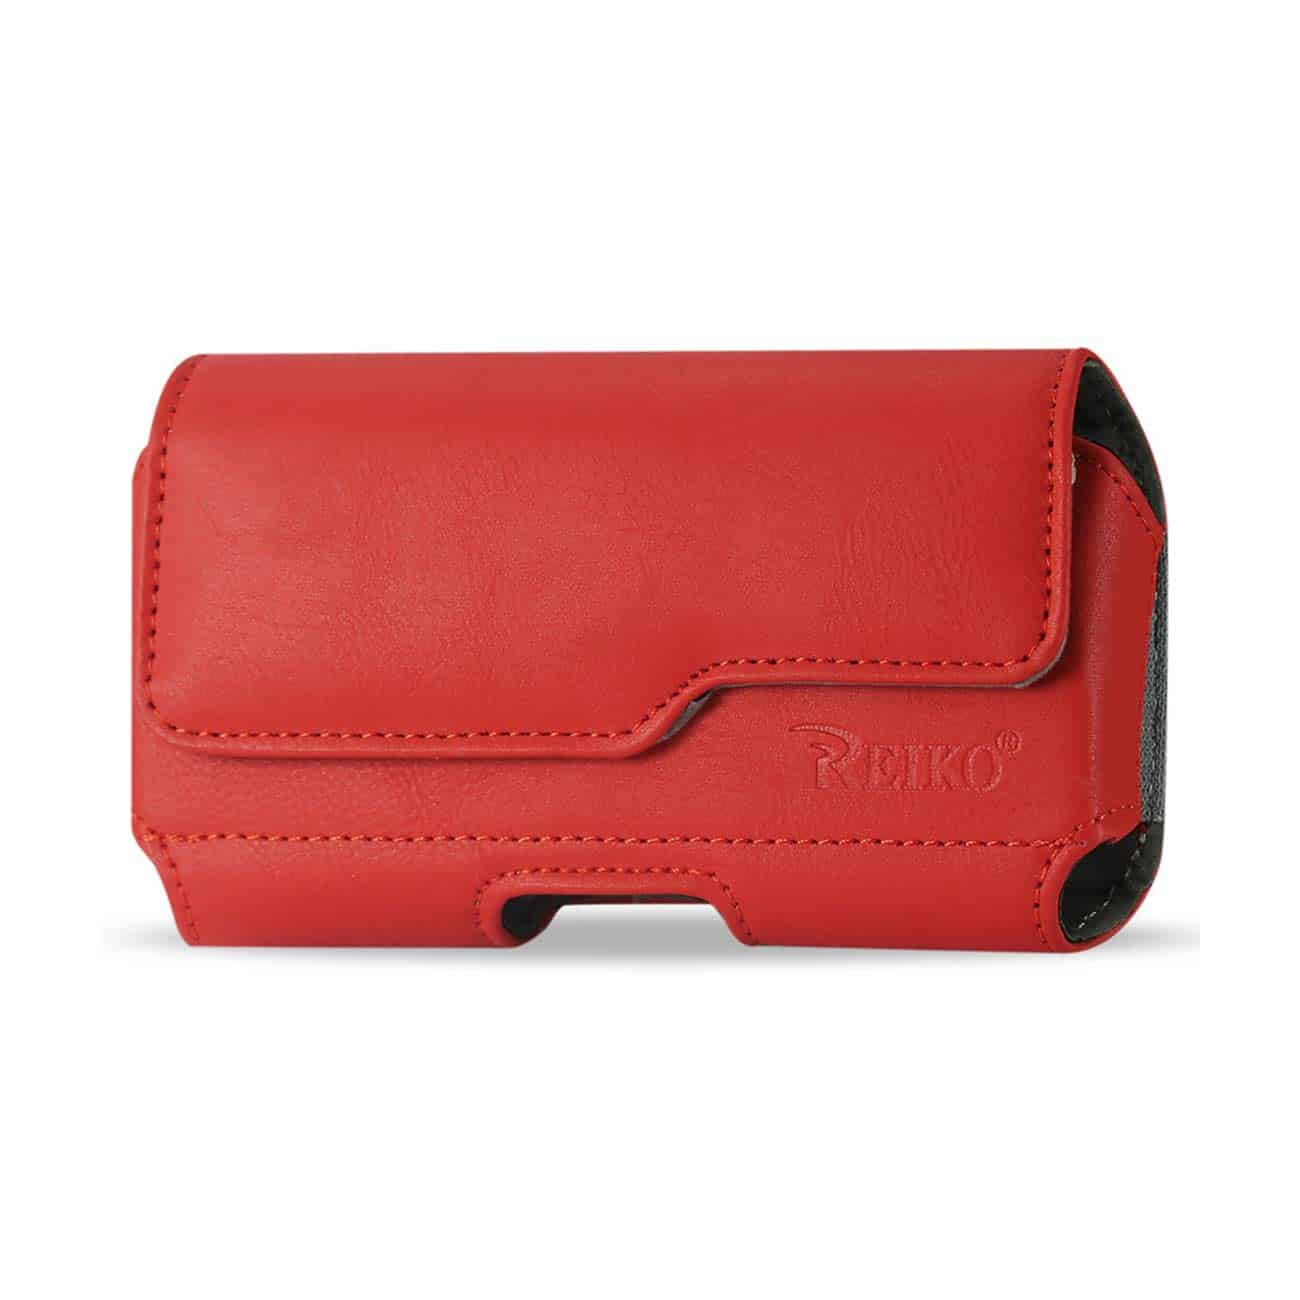 HORIZONTAL Z LID LEATHER POUCH SAMSUNG GALAXY NOTE 3 IN RED (6.5X3.62X0.71 INCHES PLUS)